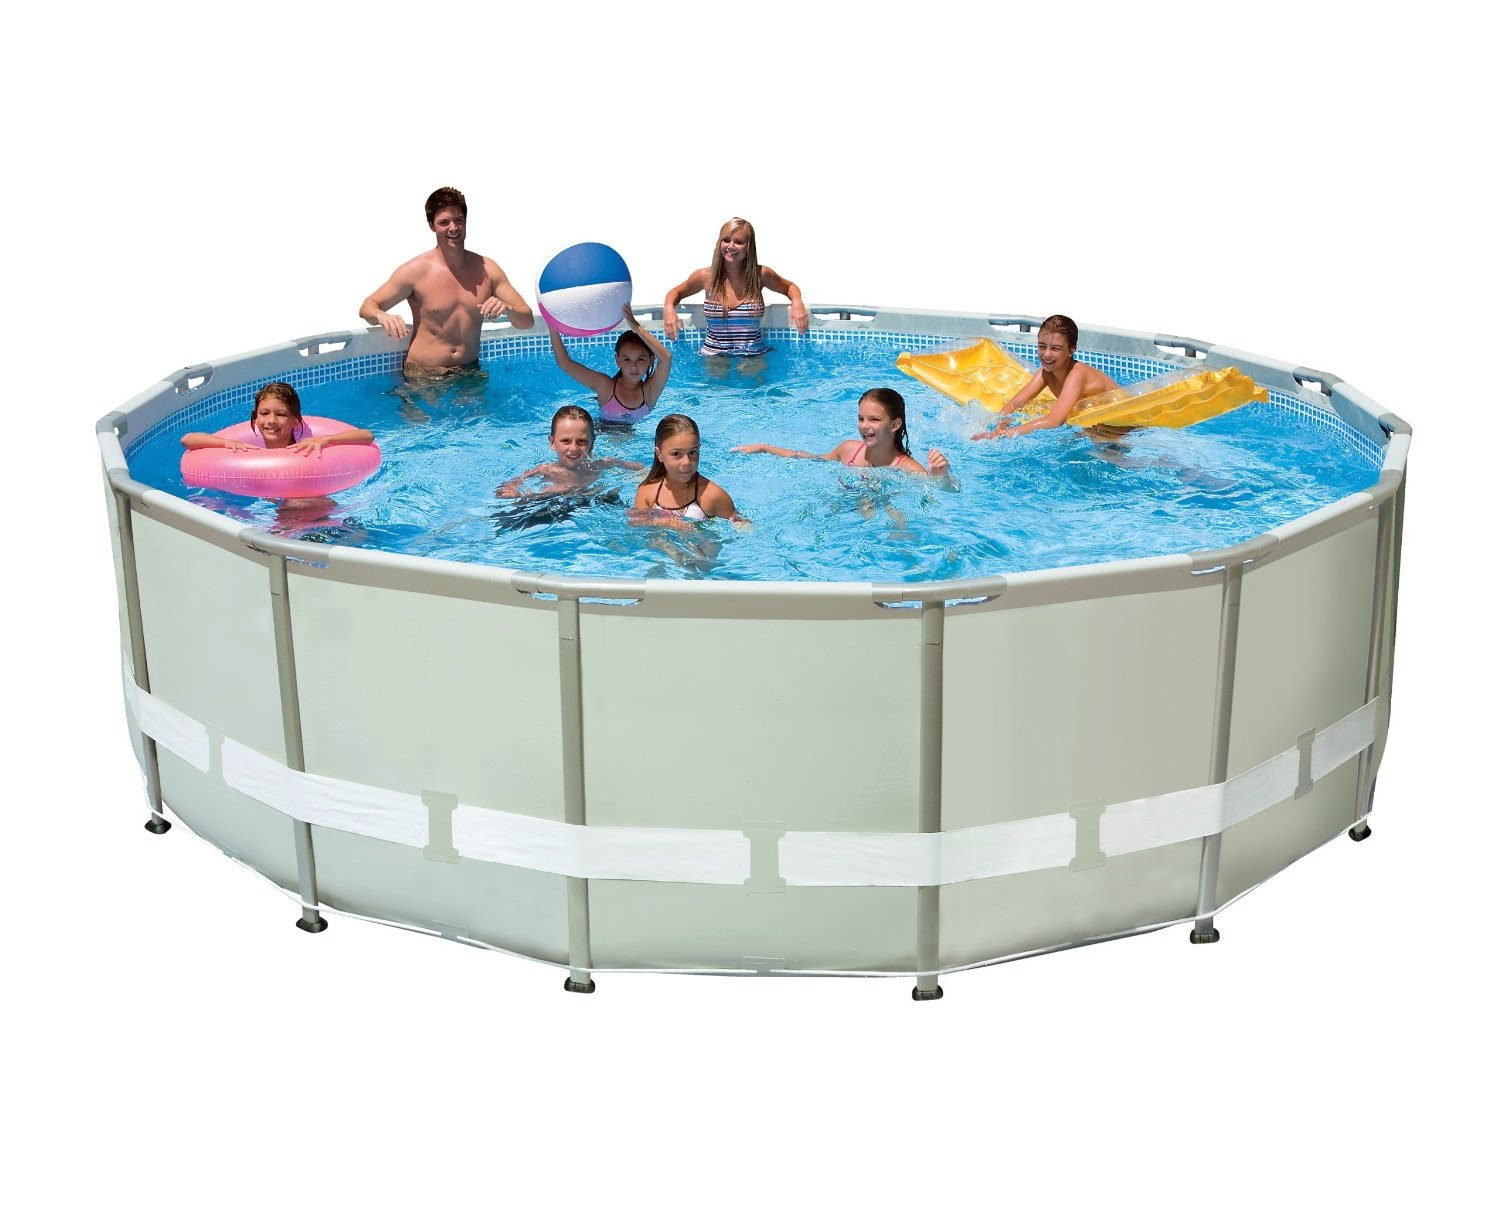 Best Seller Intex Pools Reviews Intex Pools 16 X 48